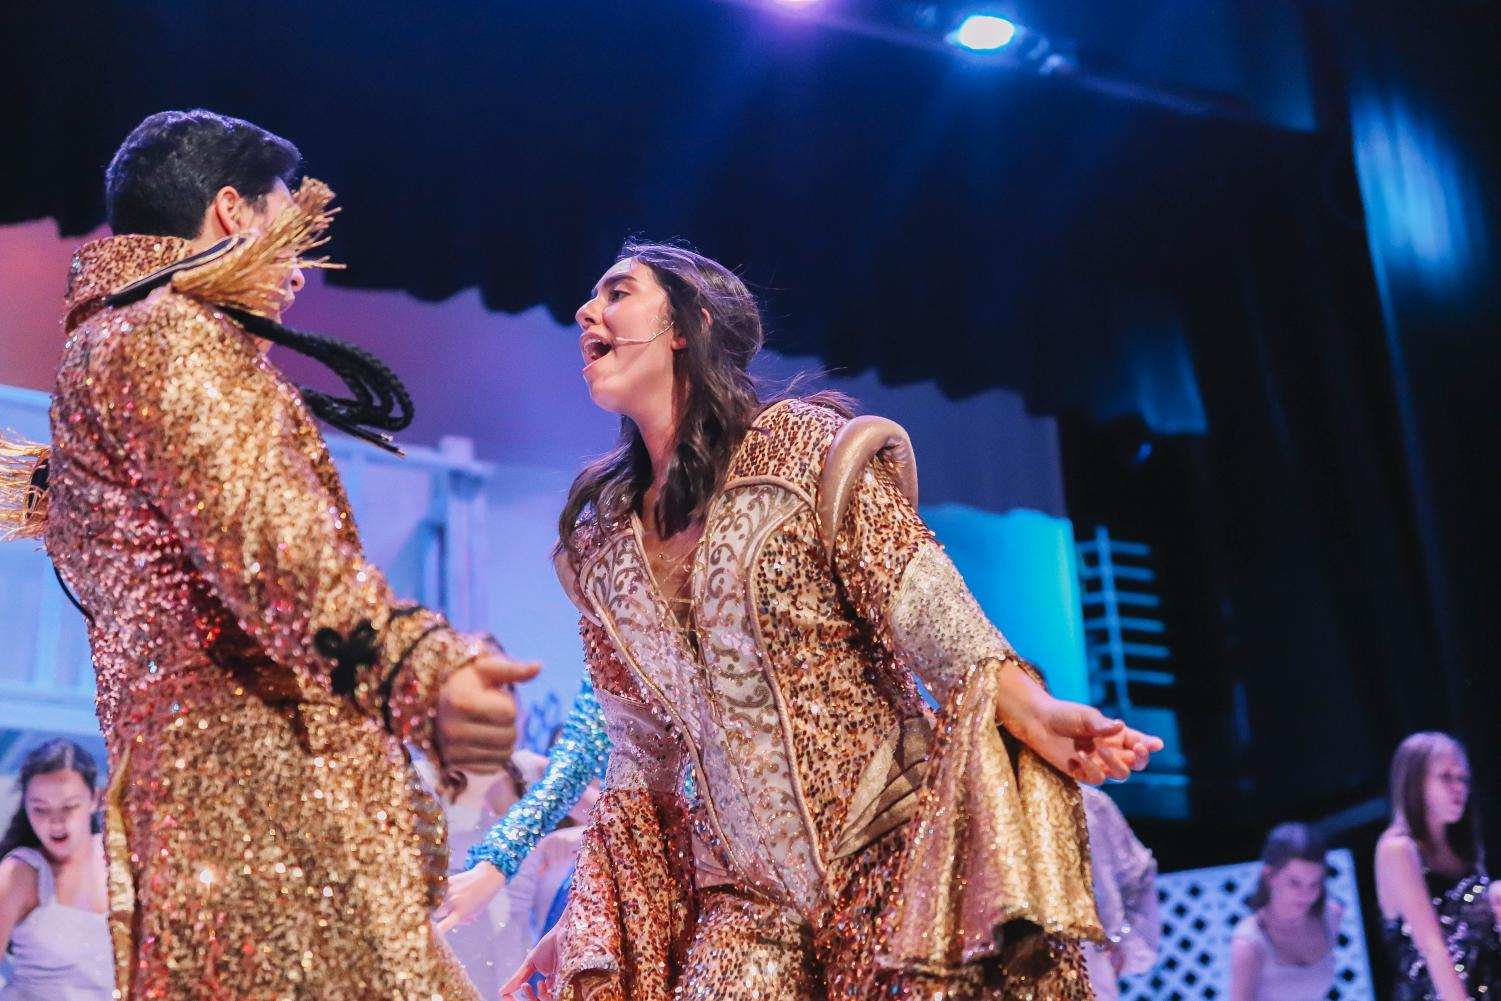 Eric Larson (Left) and Kamryn Morales  (Right) perform Mamma Mia in their breathtaking gold costumes